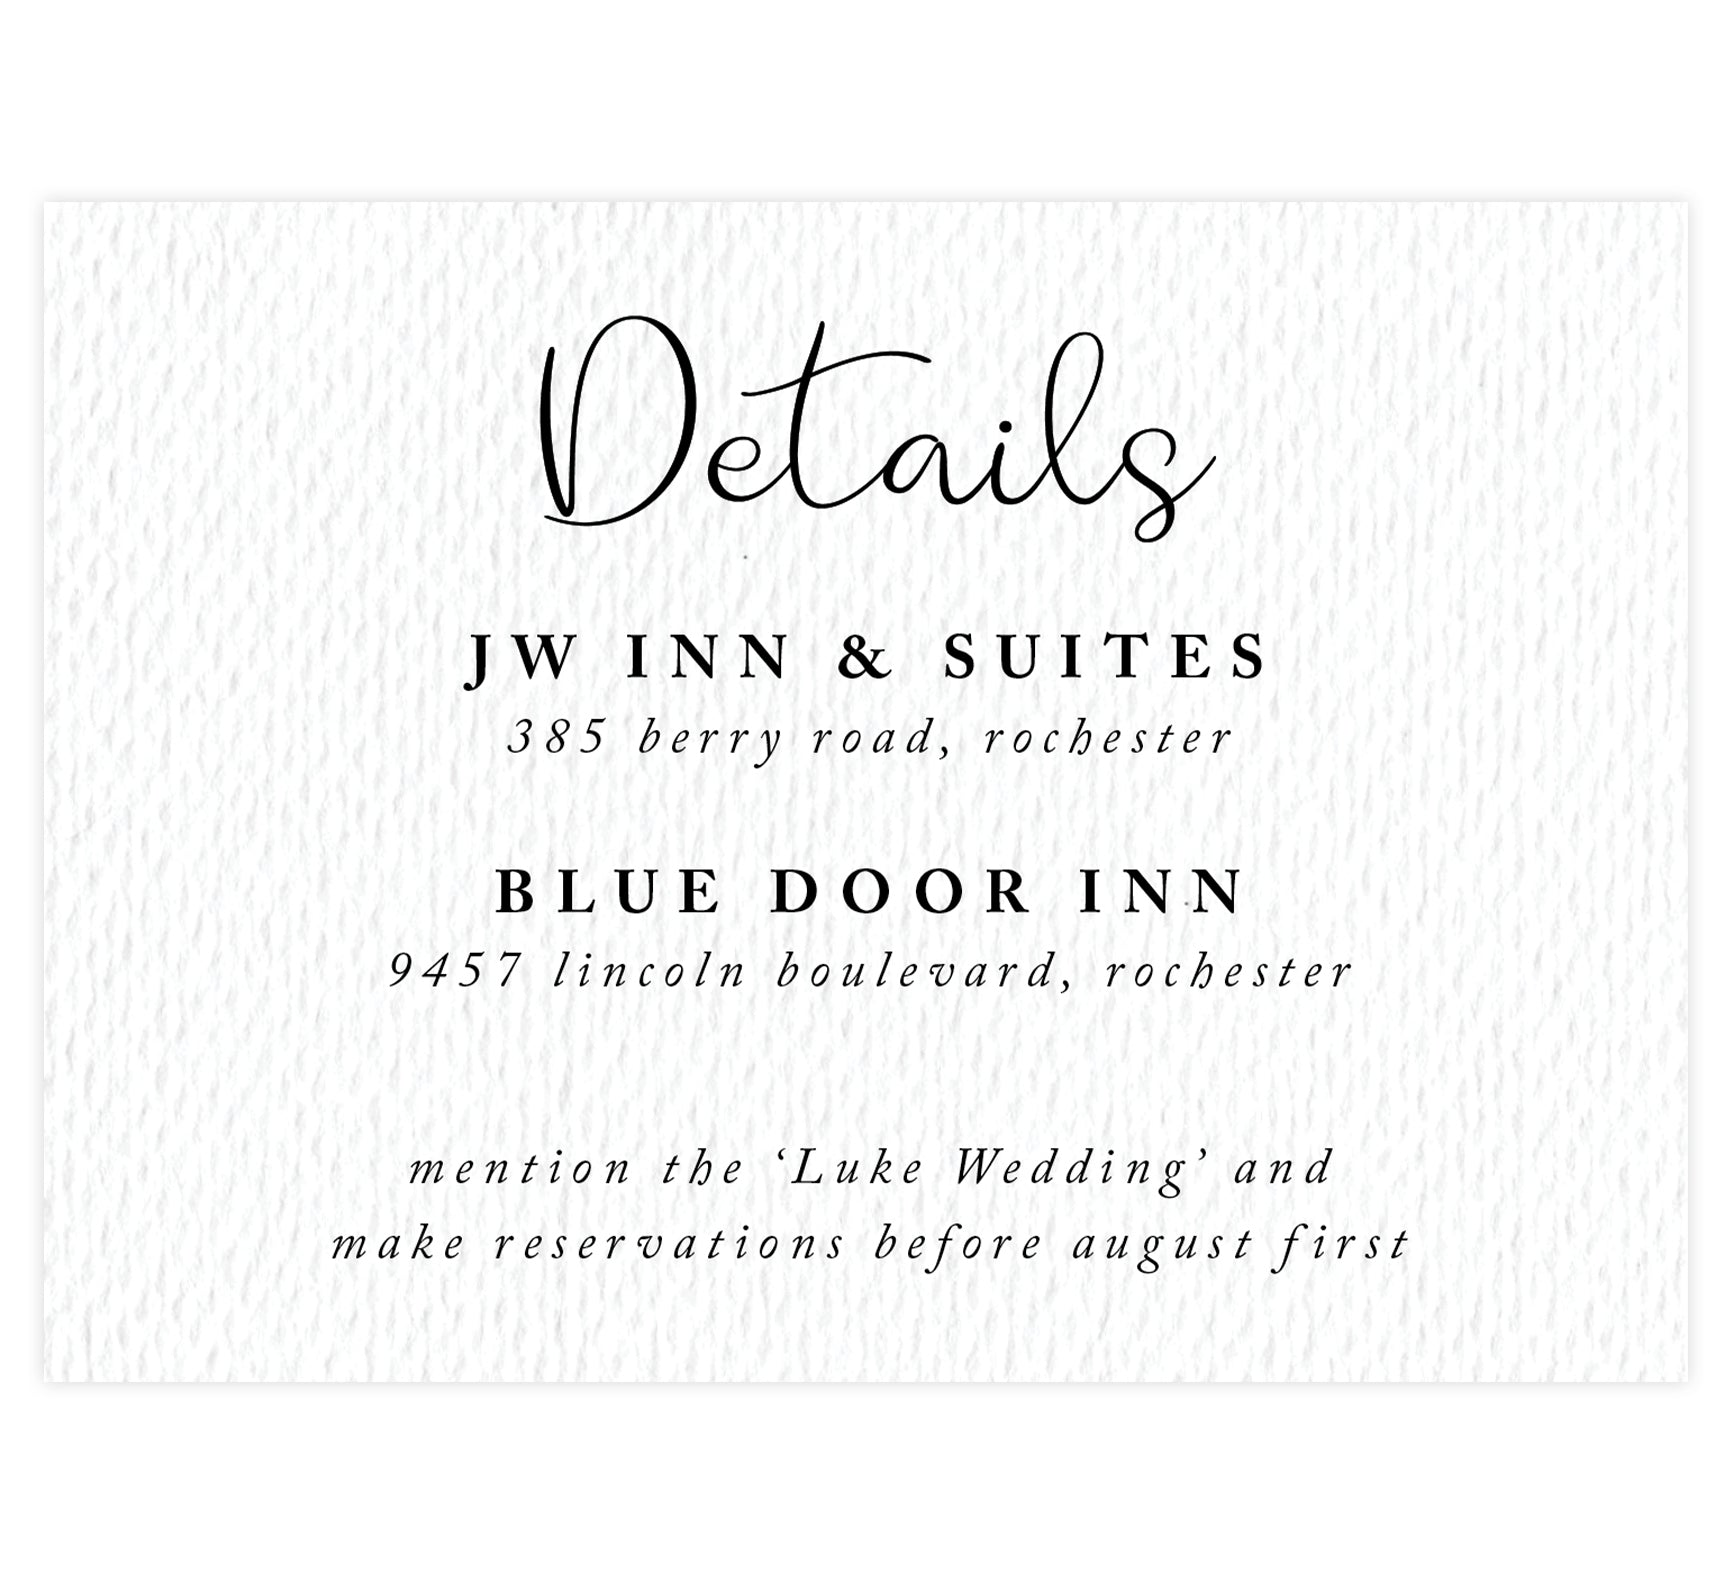 Hand Drawn Ceremony wedding accommodations/detail card; white textured background with black text